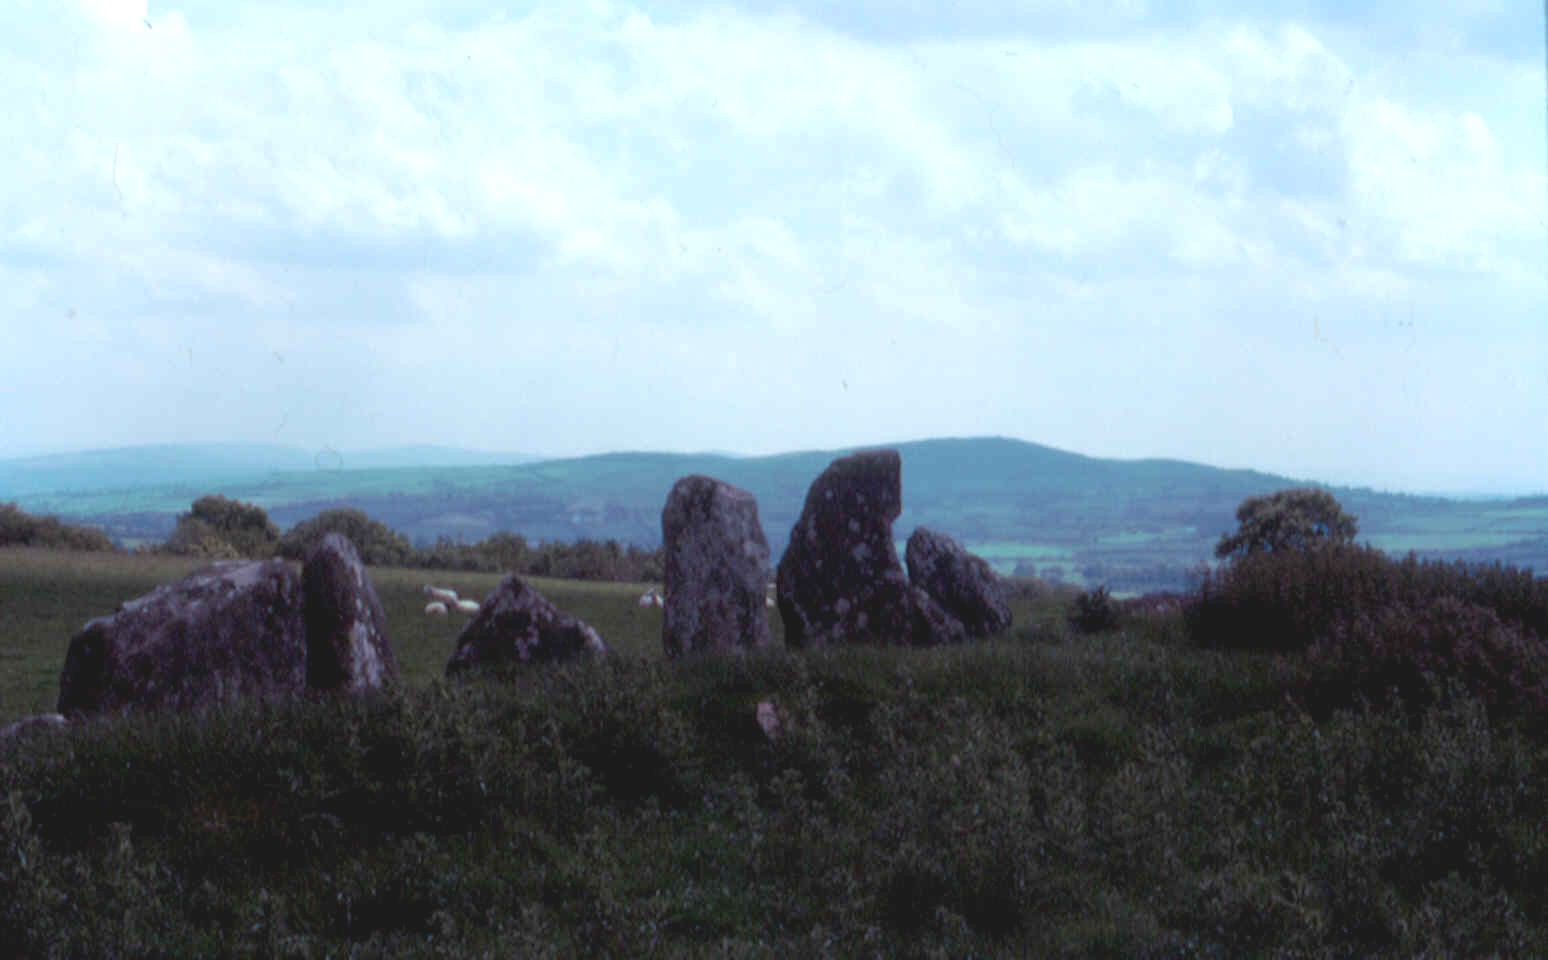 Beltany Stone Circle, Raphoe, Co. Donegal